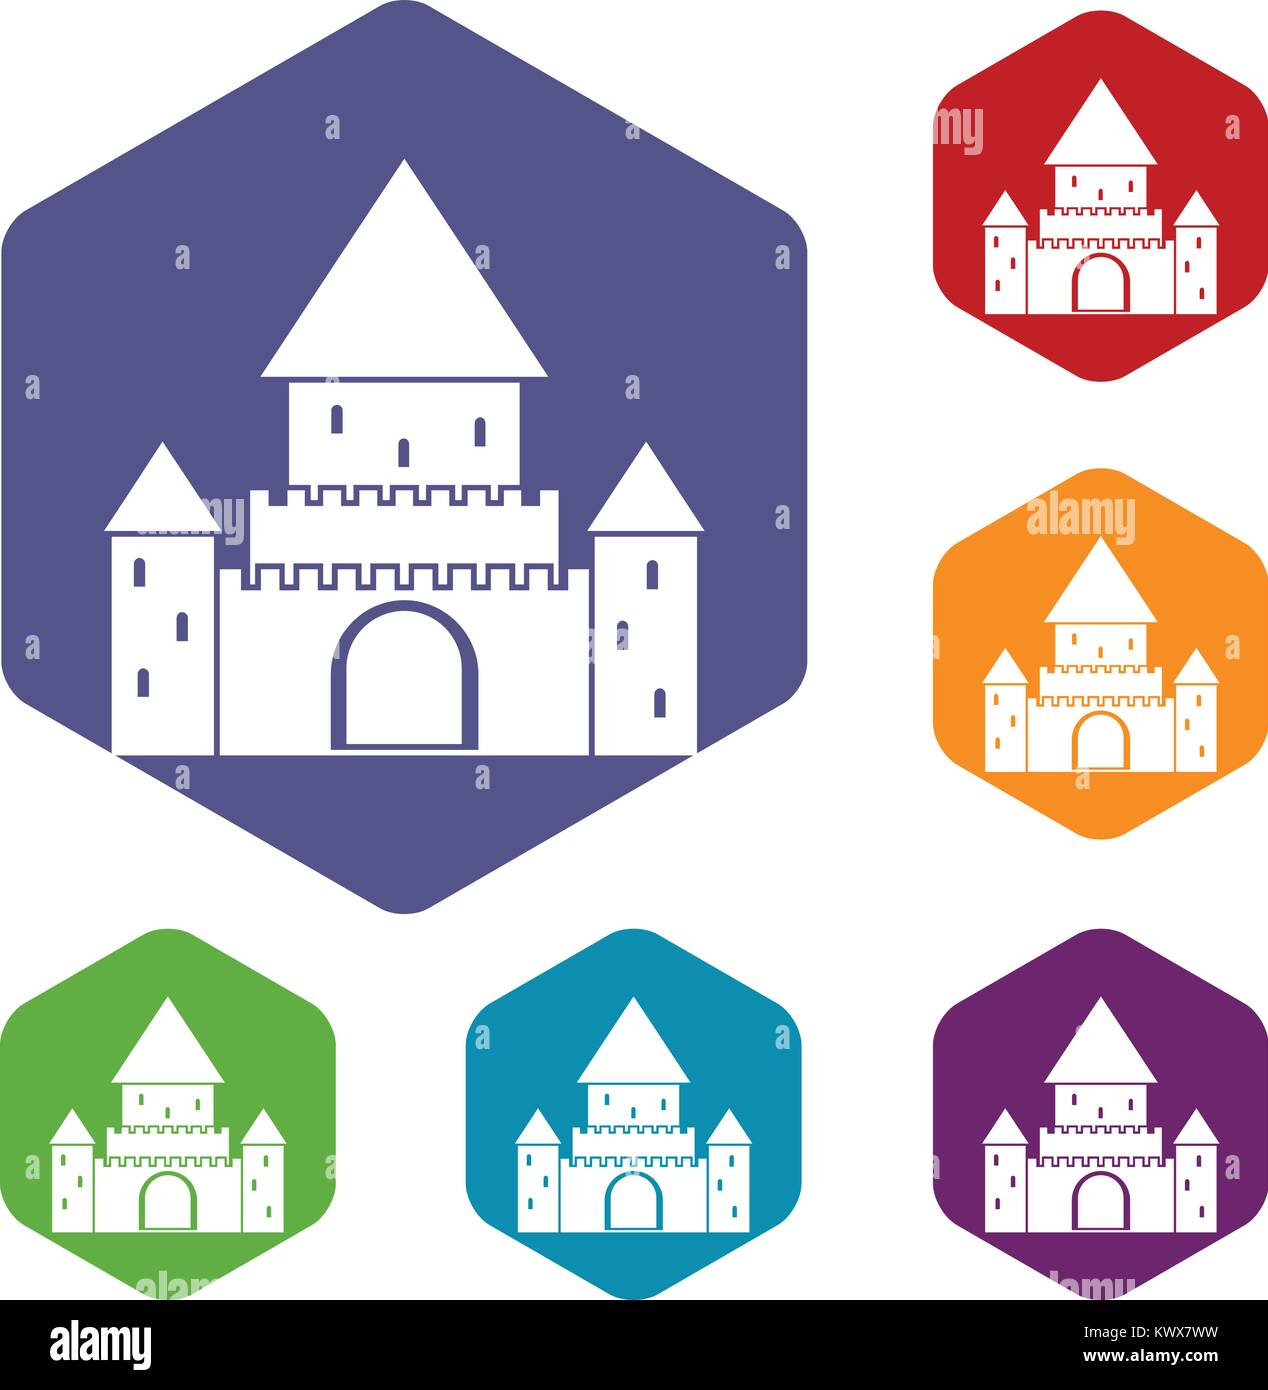 Chillon Castle, Switzerland icons set rhombus in different colors isolated on white background - Stock Vector